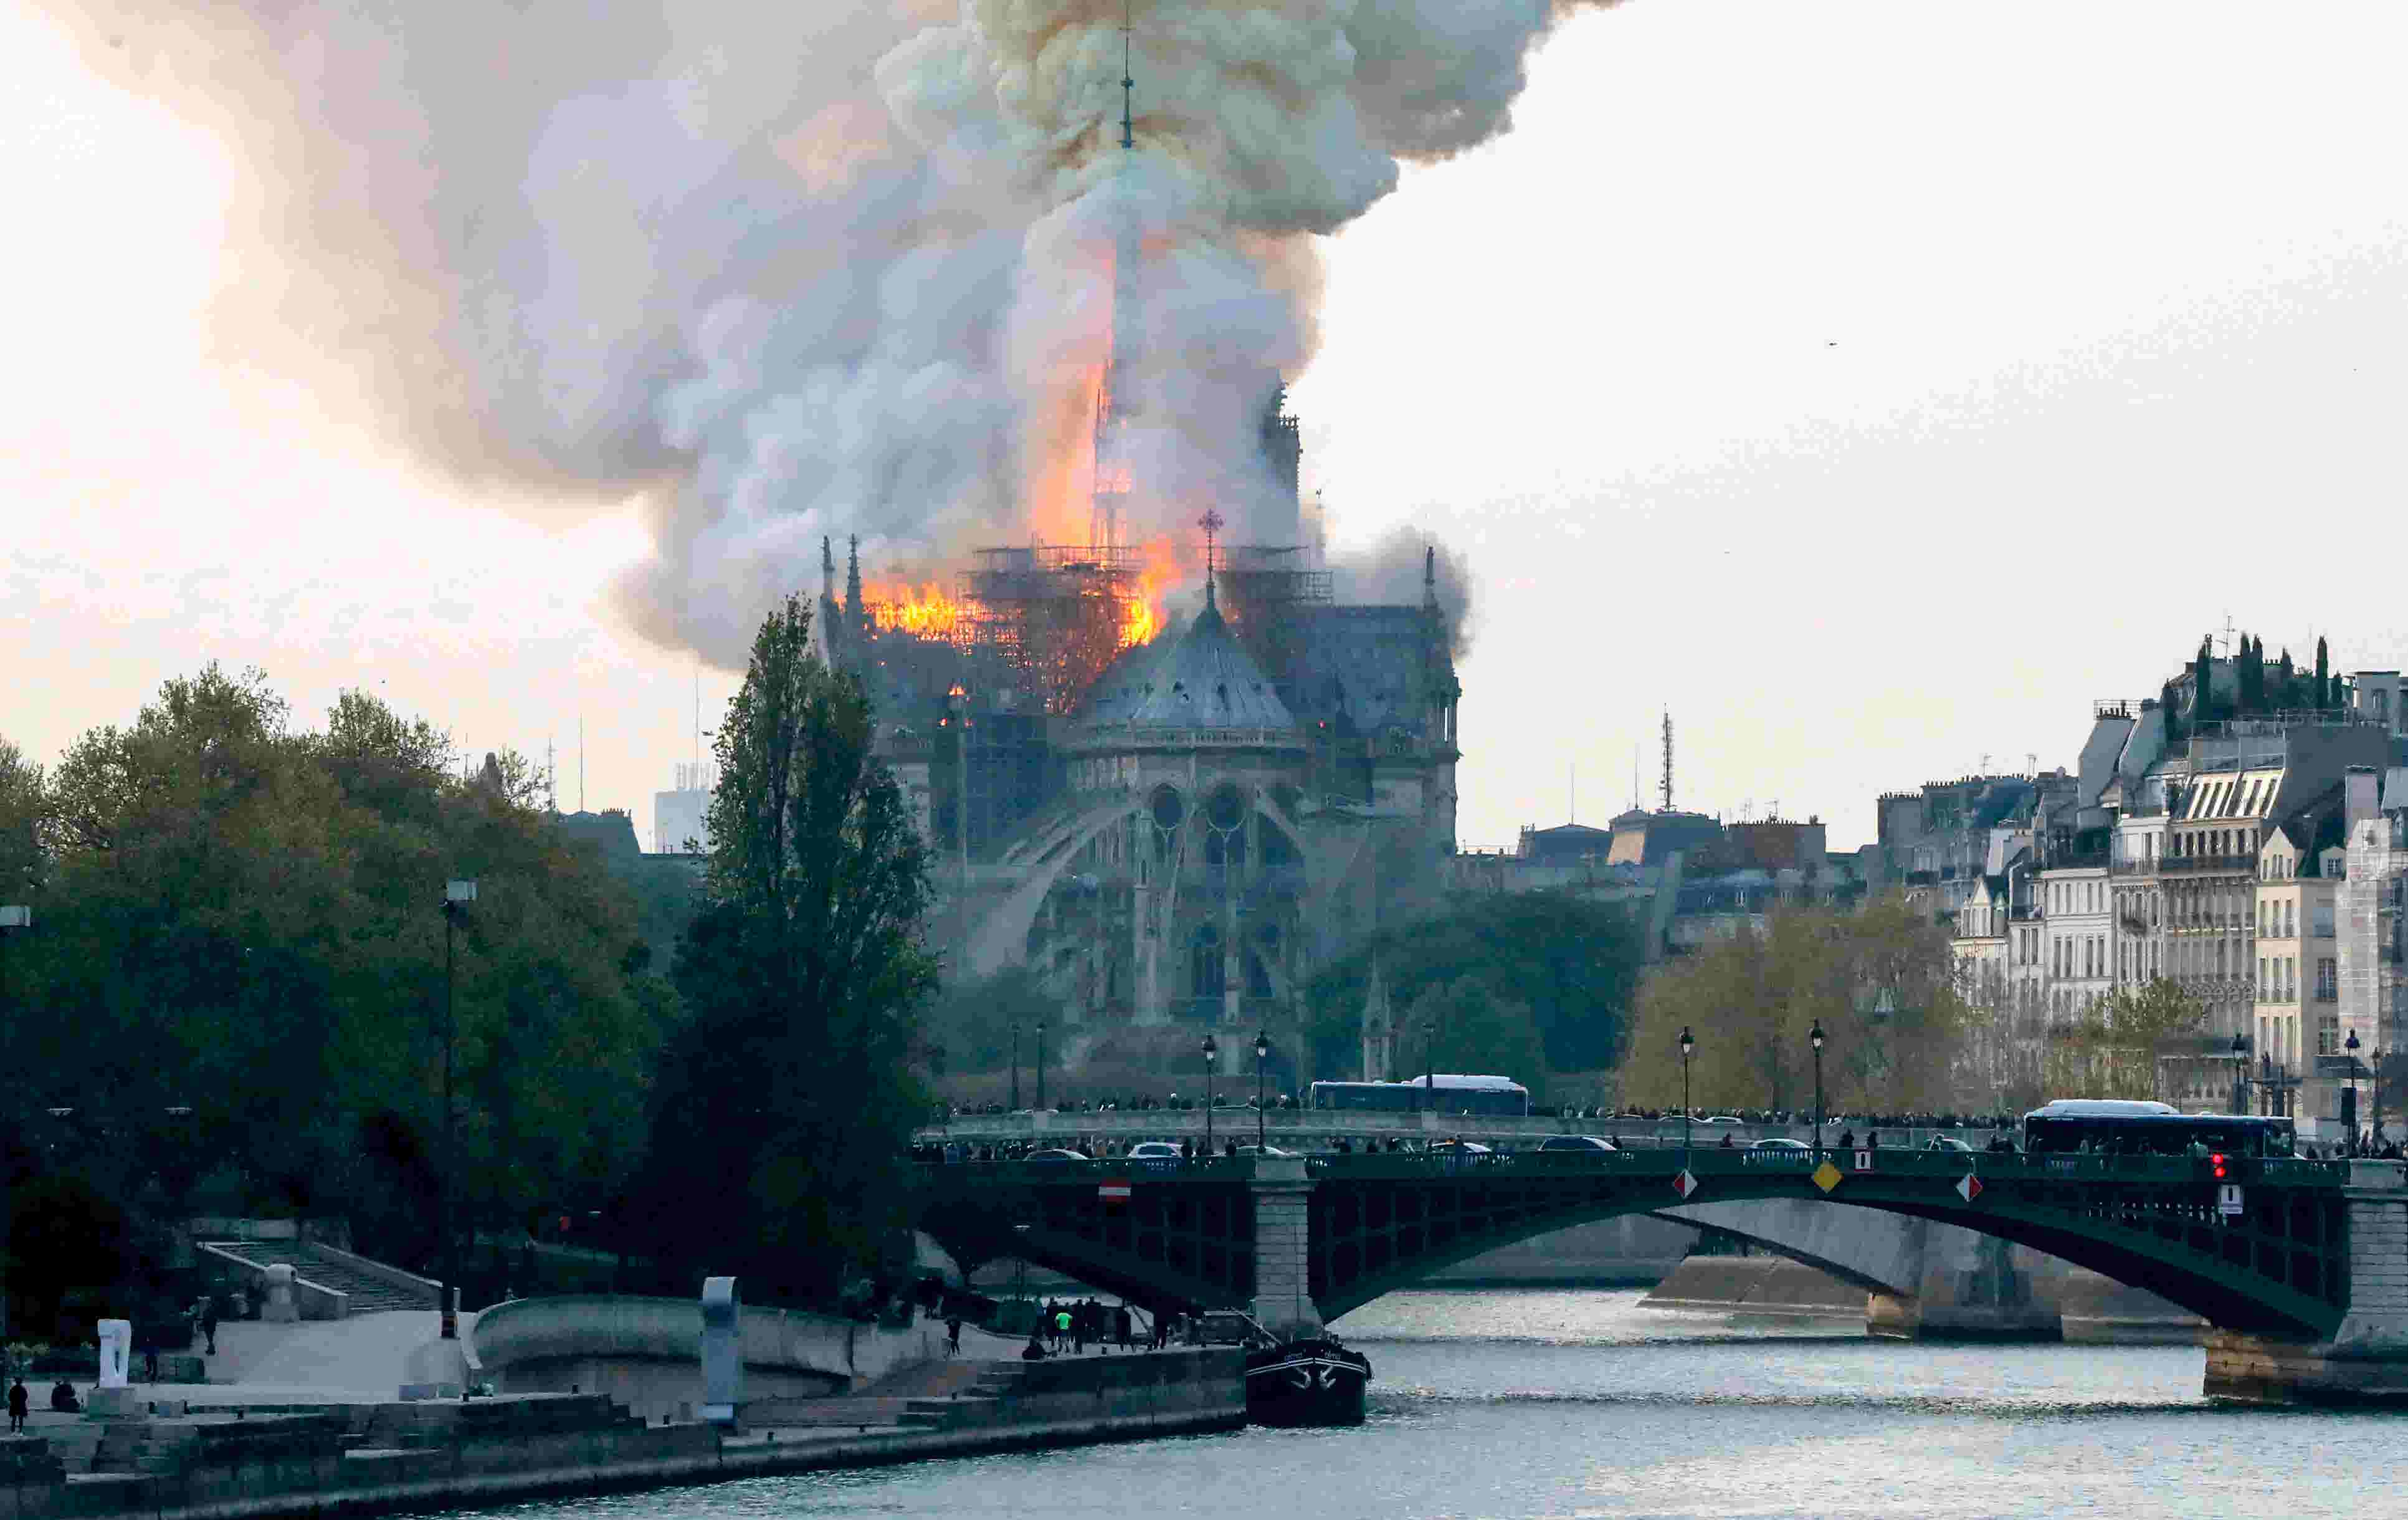 fbc6adc1-4042-4075-be2f-9f1e4f2bd35f-GETTY_NOTRE_DAME_CATHEDRAL.jpg?quality=10